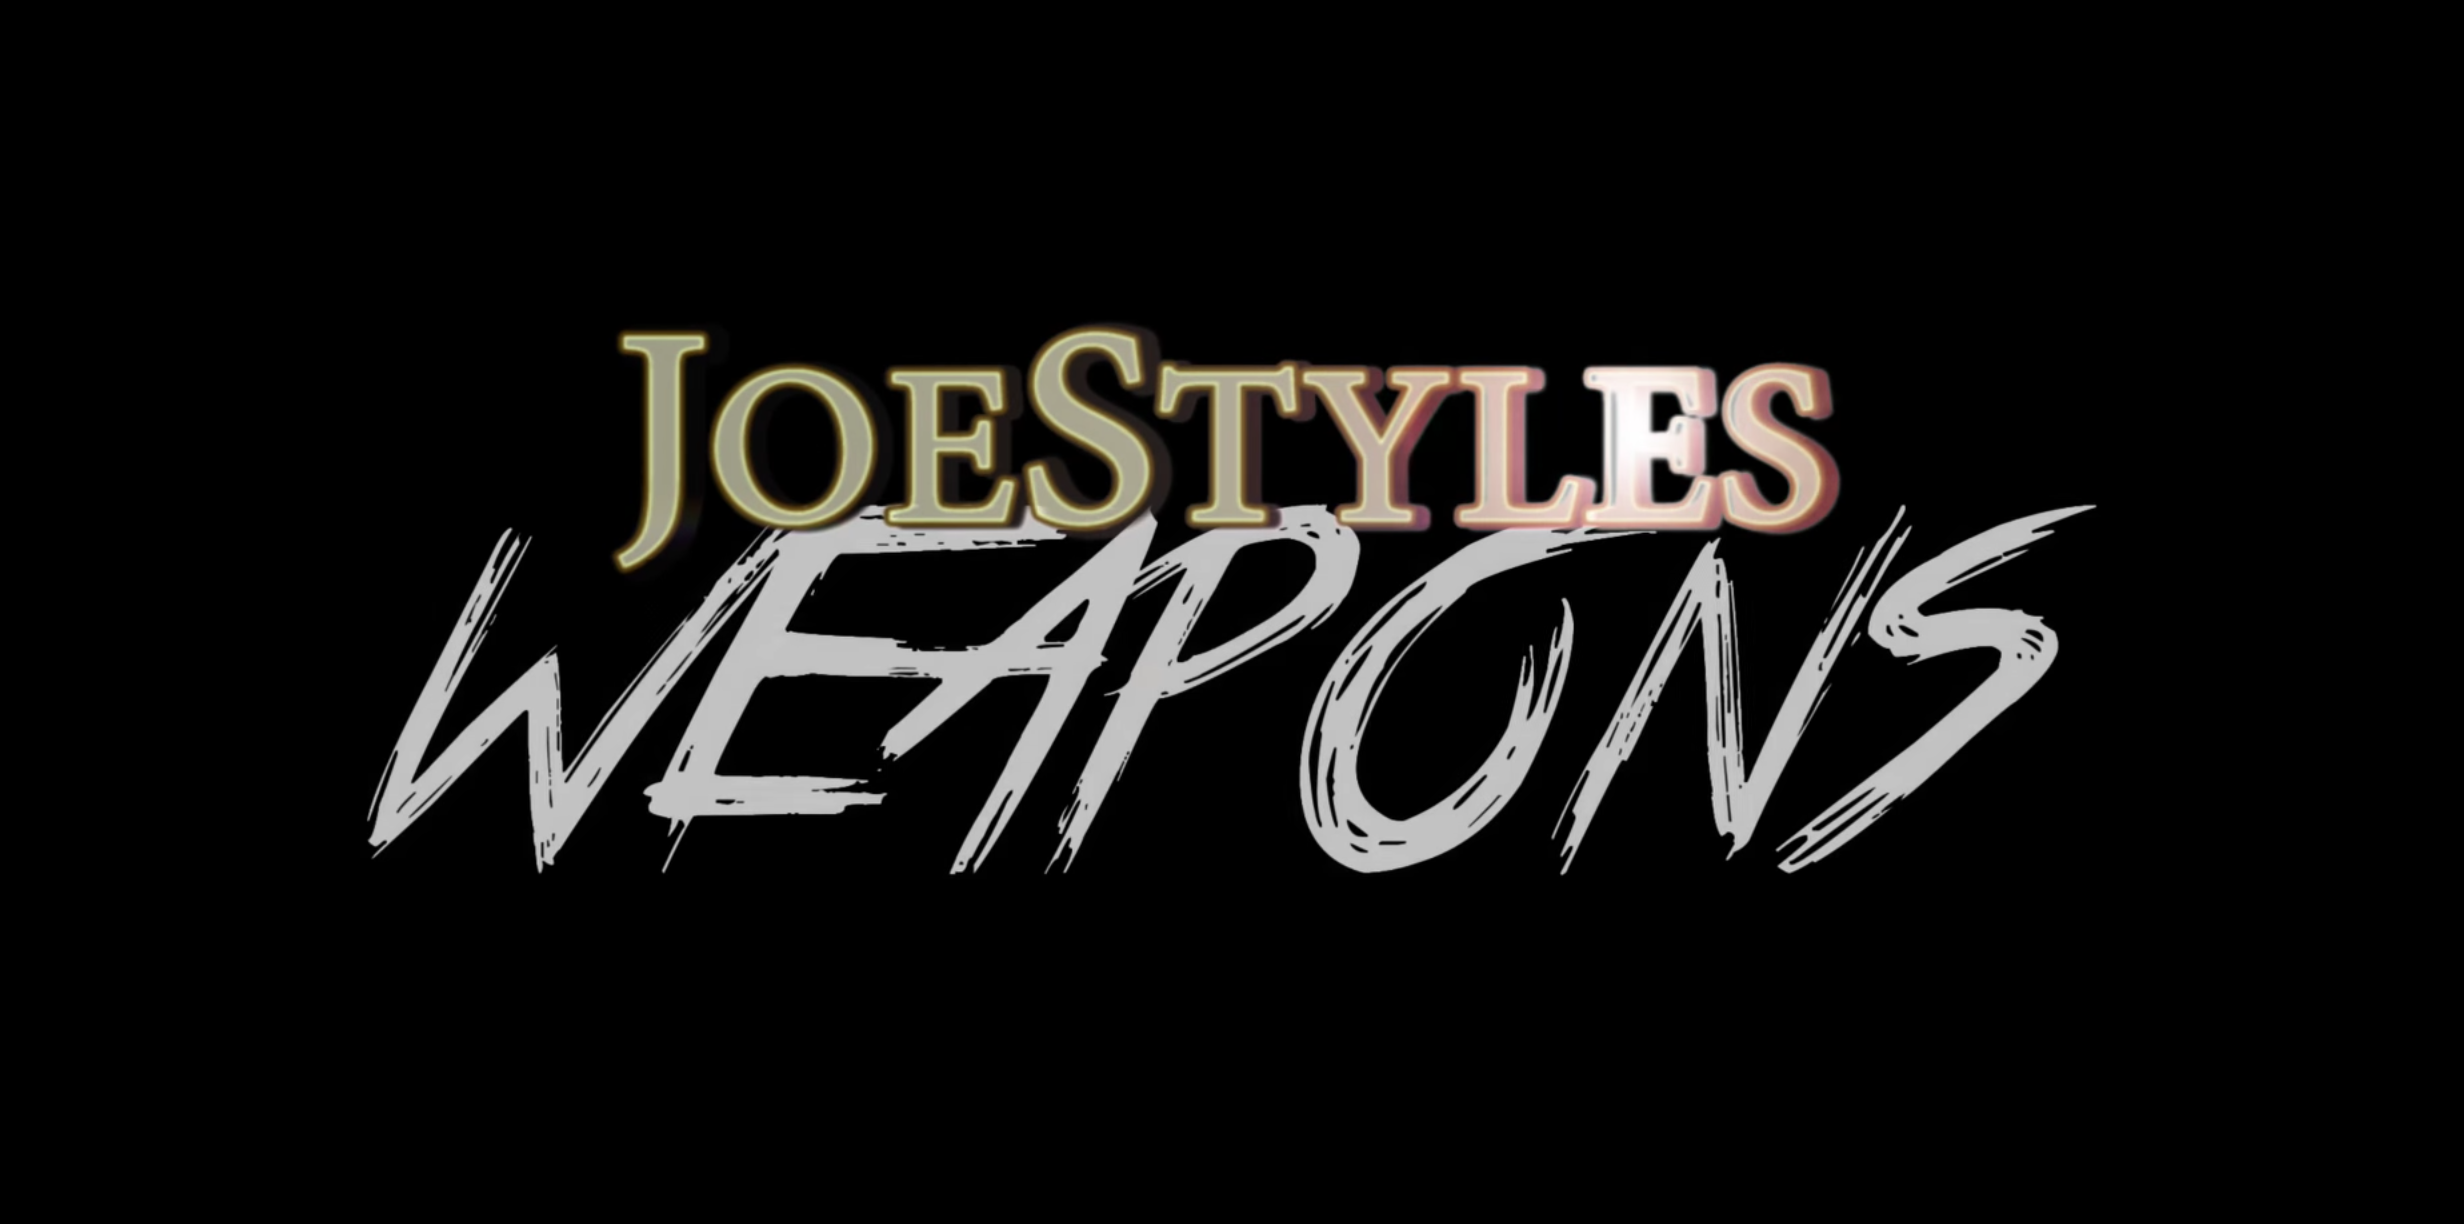 Weaponz - Joe Styles feat Laid Law